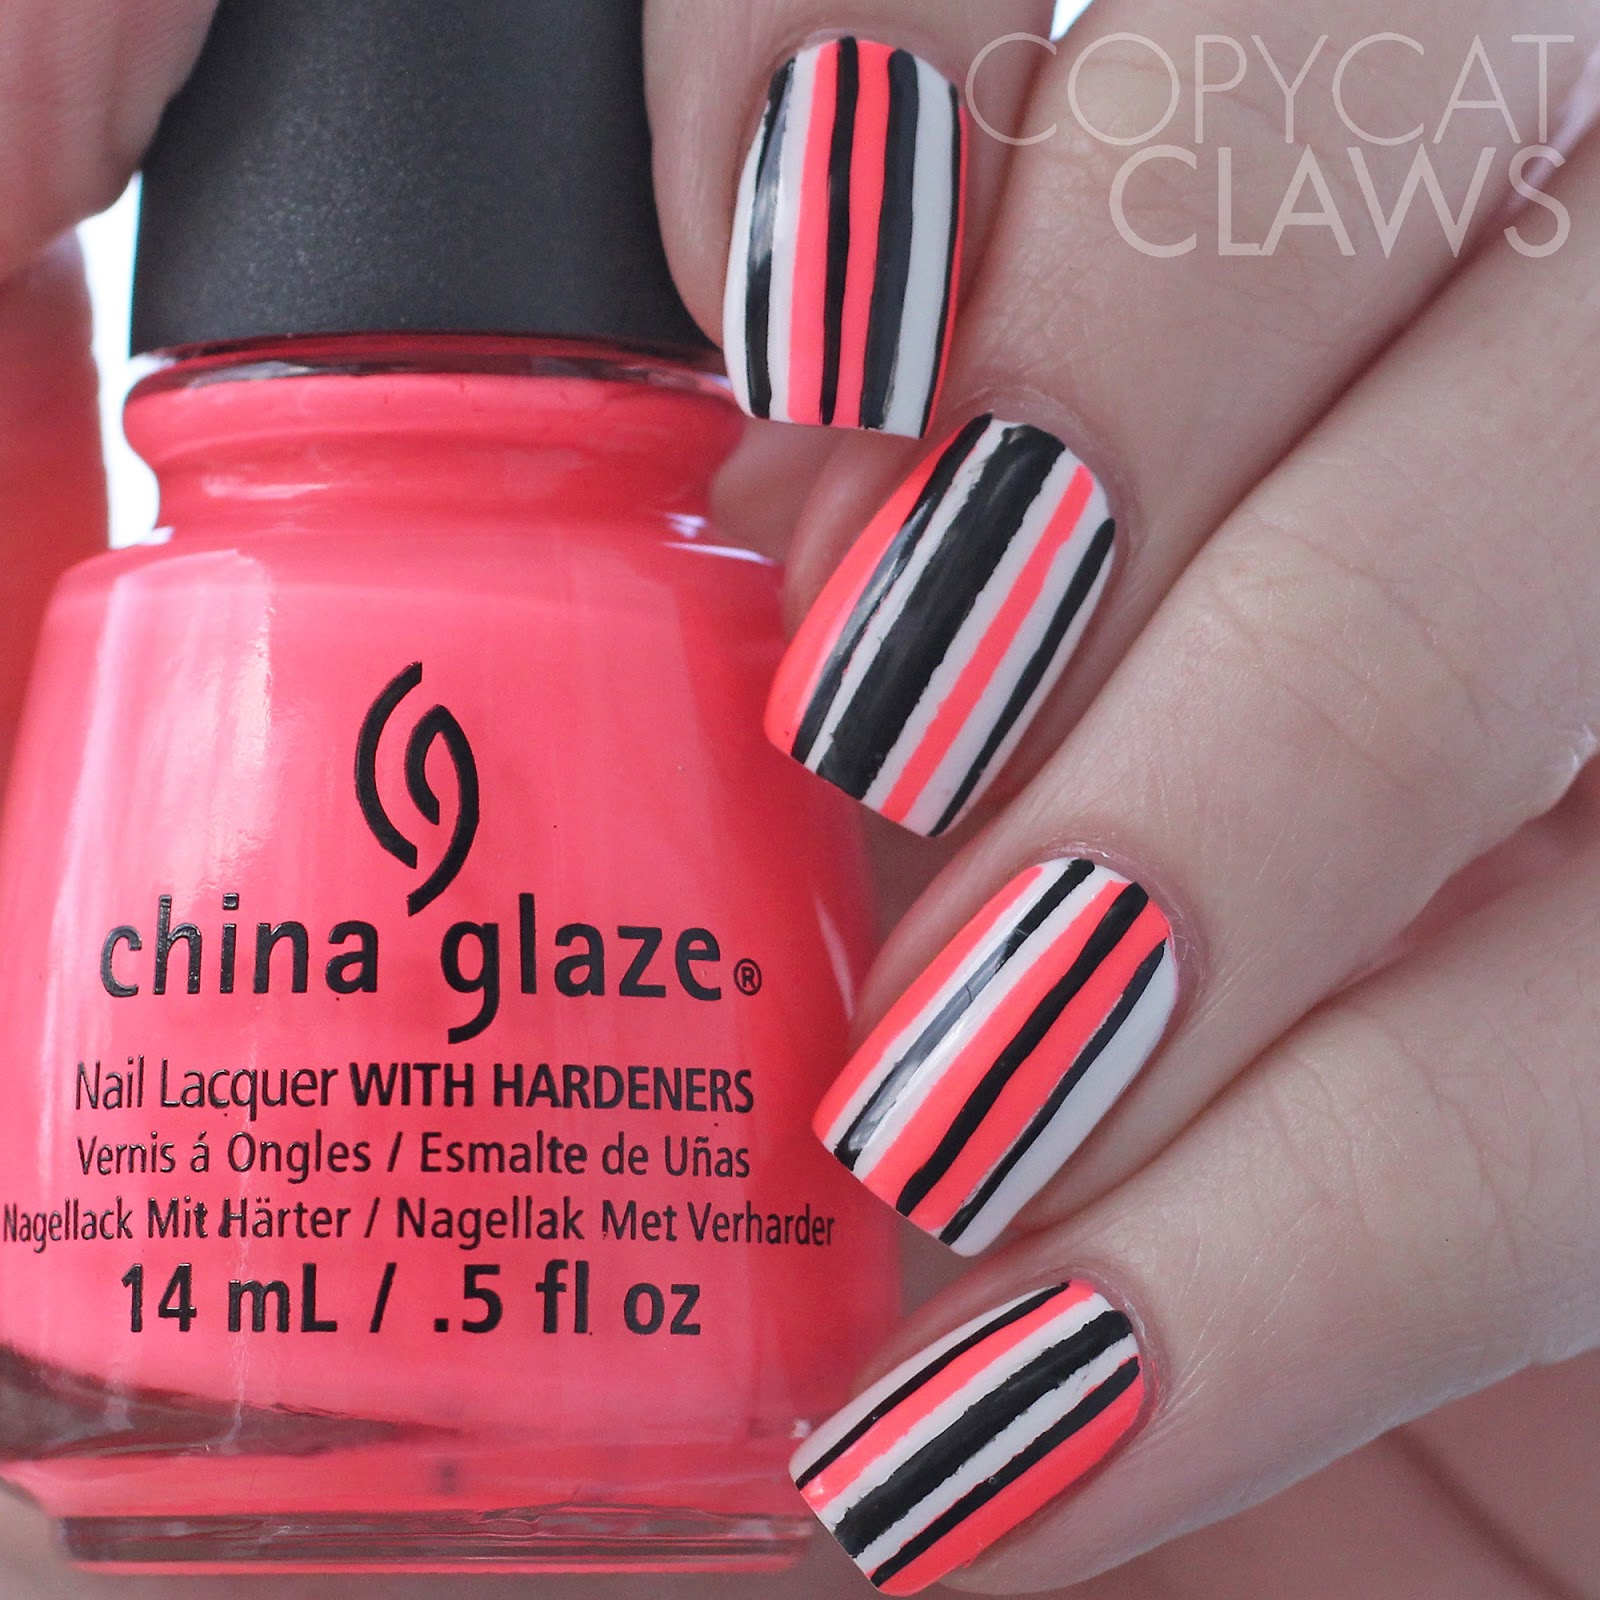 Copycat Claws Neon Striped Nail Art